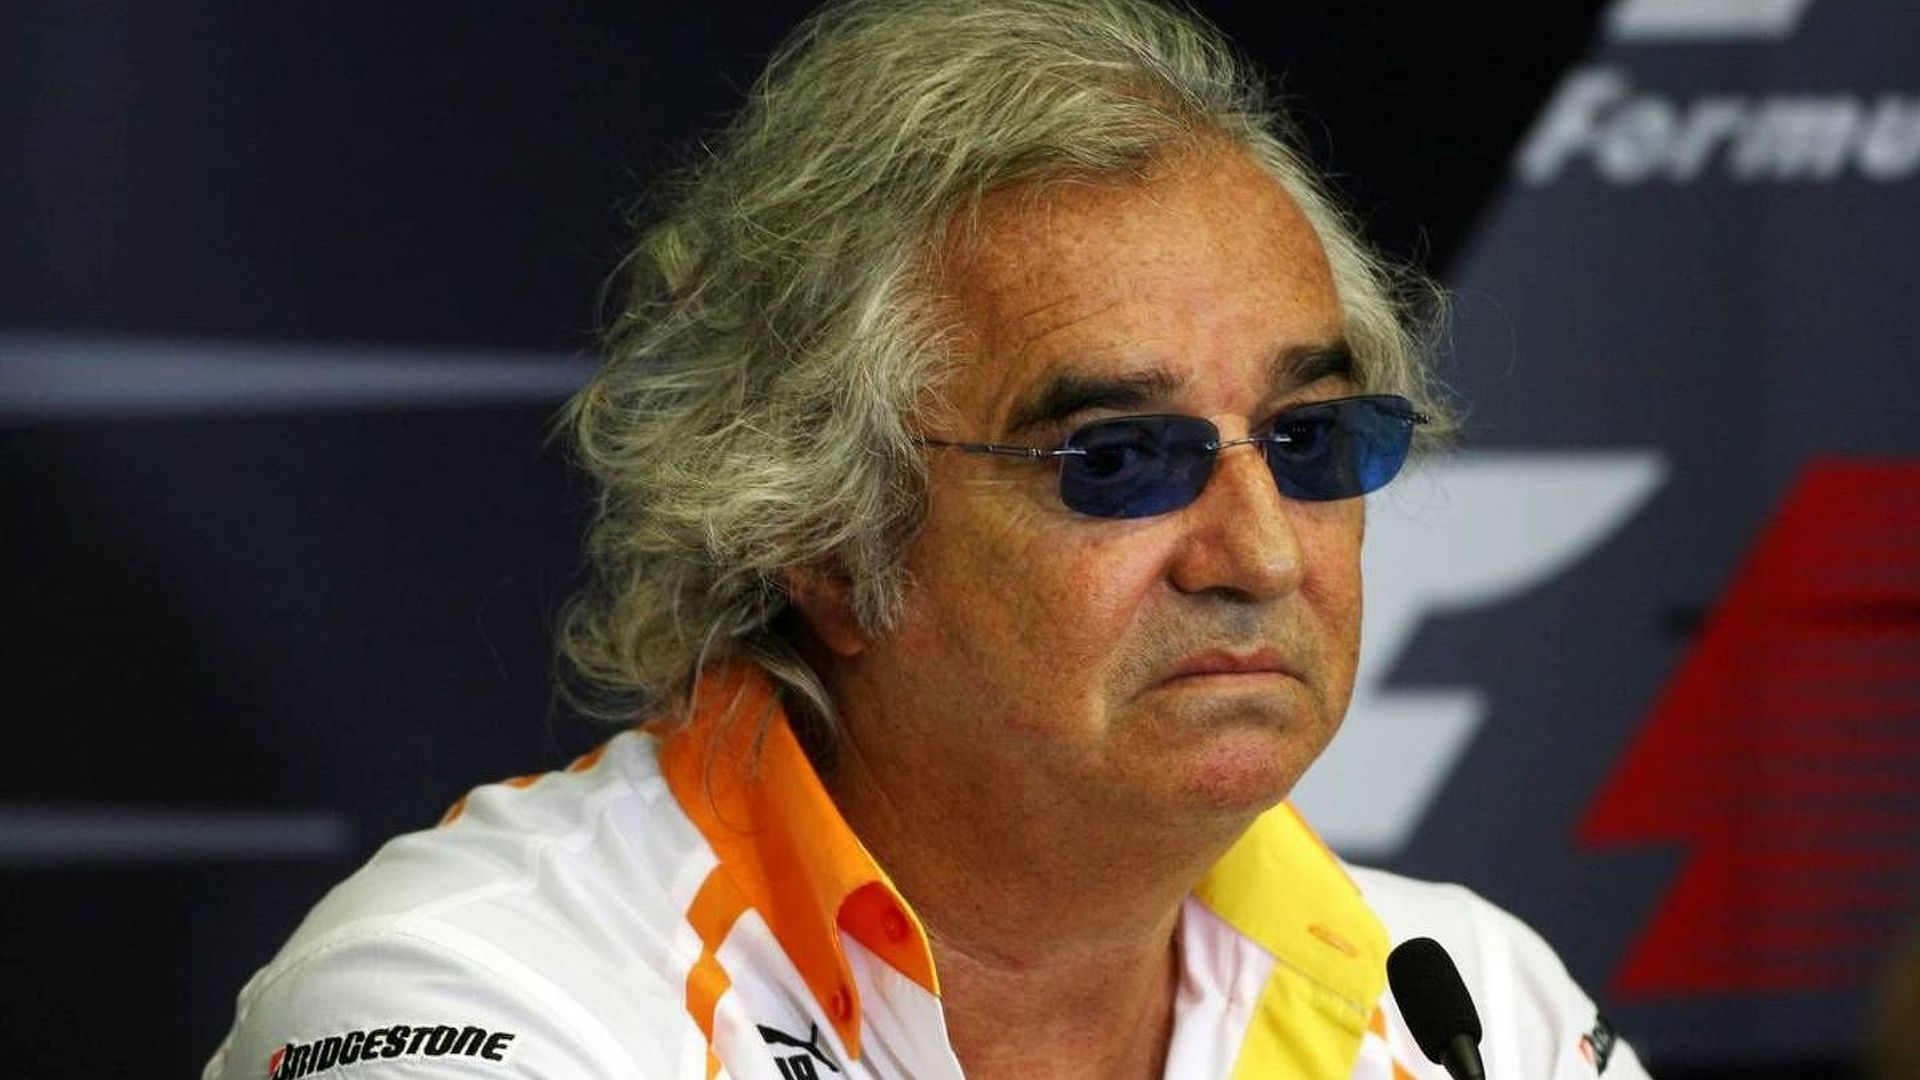 Briatore not present for crash-gate hearing